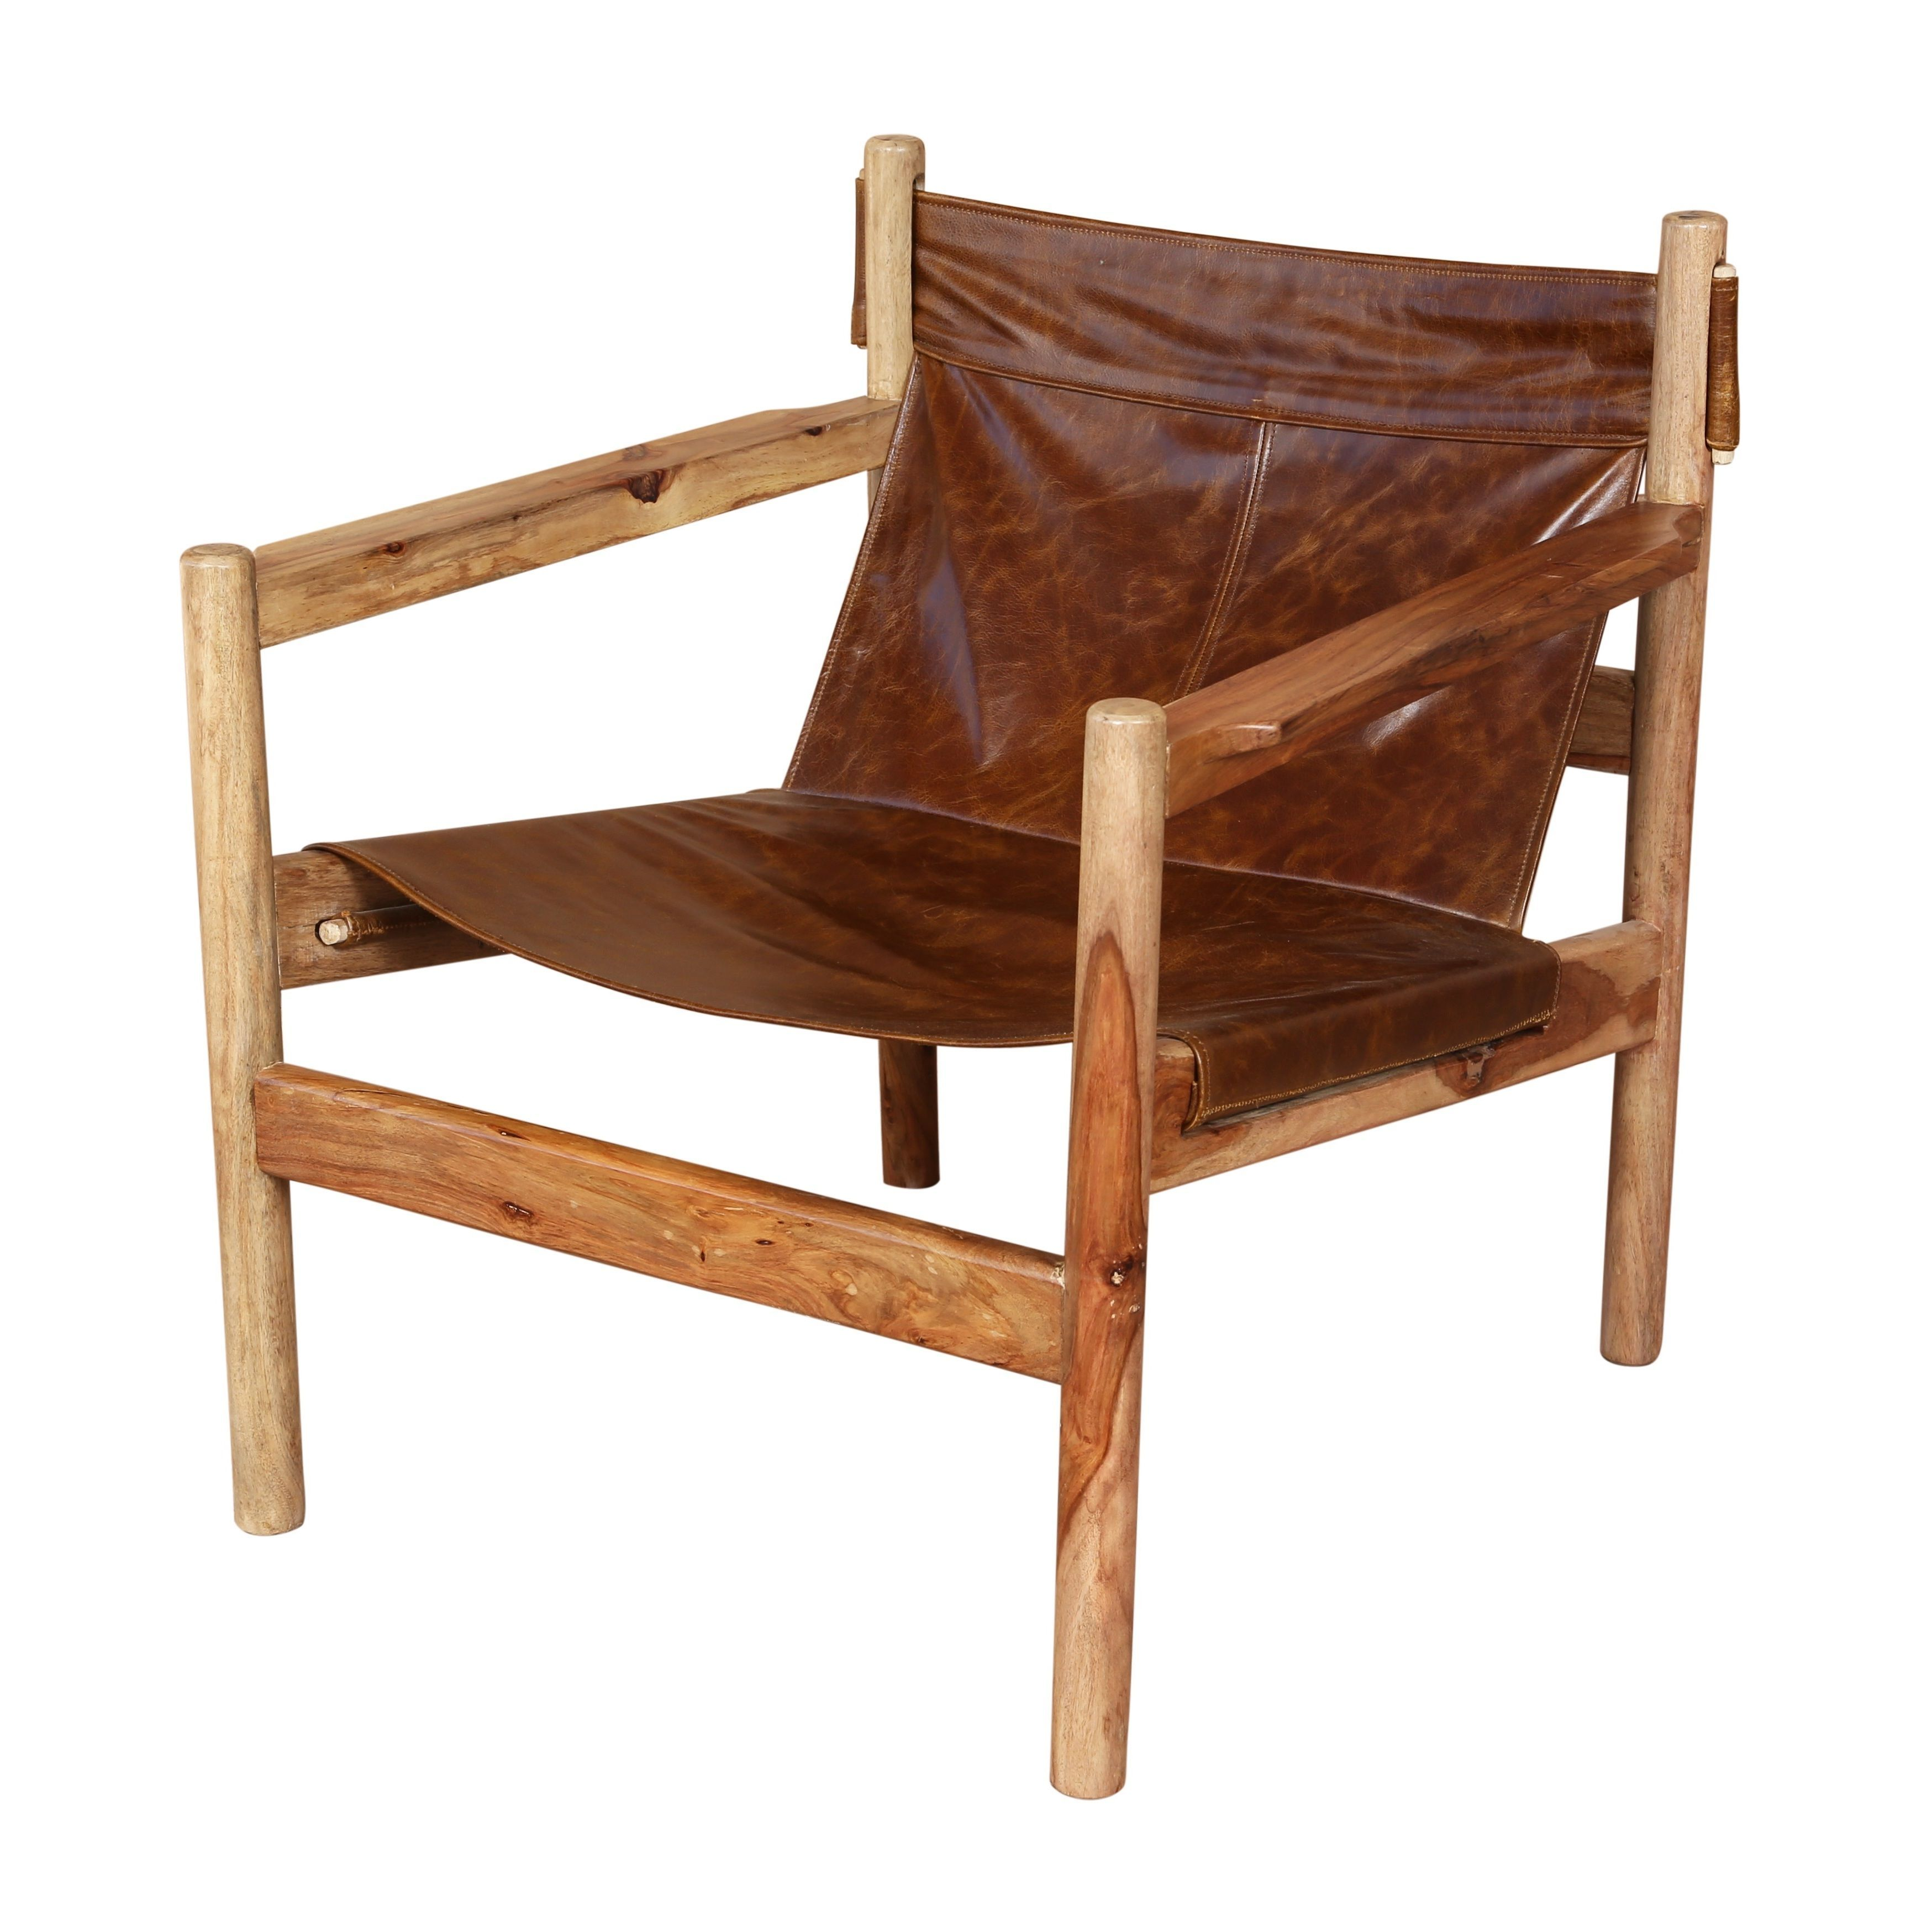 Handmade Genoa Sheesham And Leather Sling Chair 30 X 26 X 27 India Quality Furniture Living Room Chairs Chair